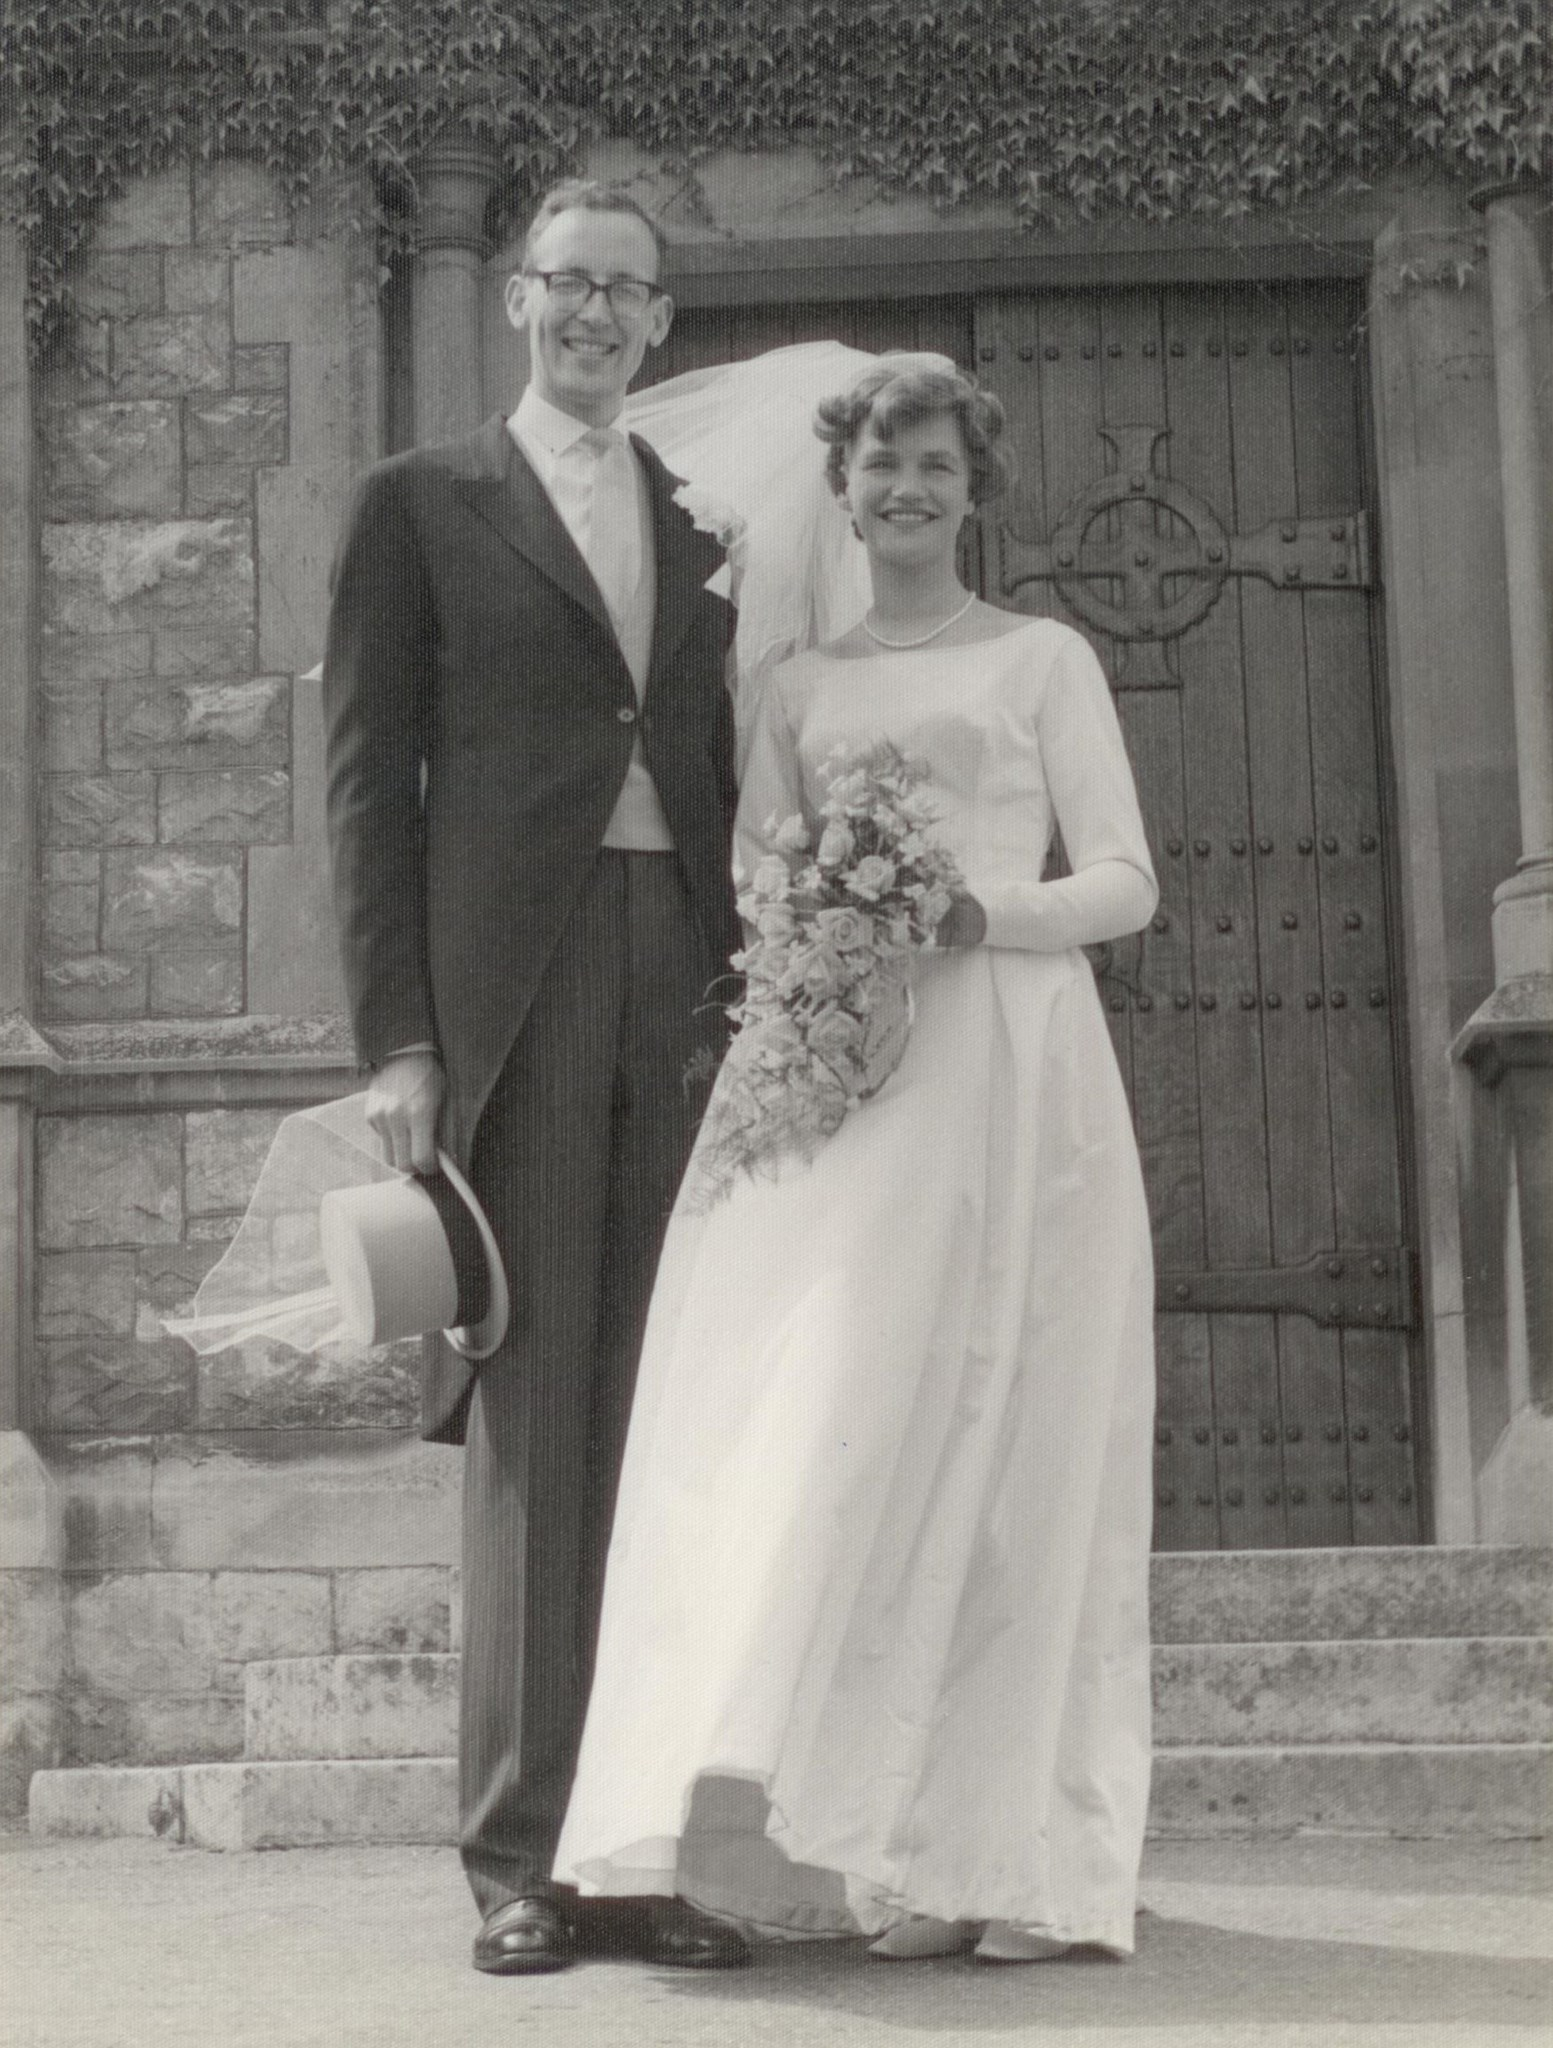 Wedding Day (1963)